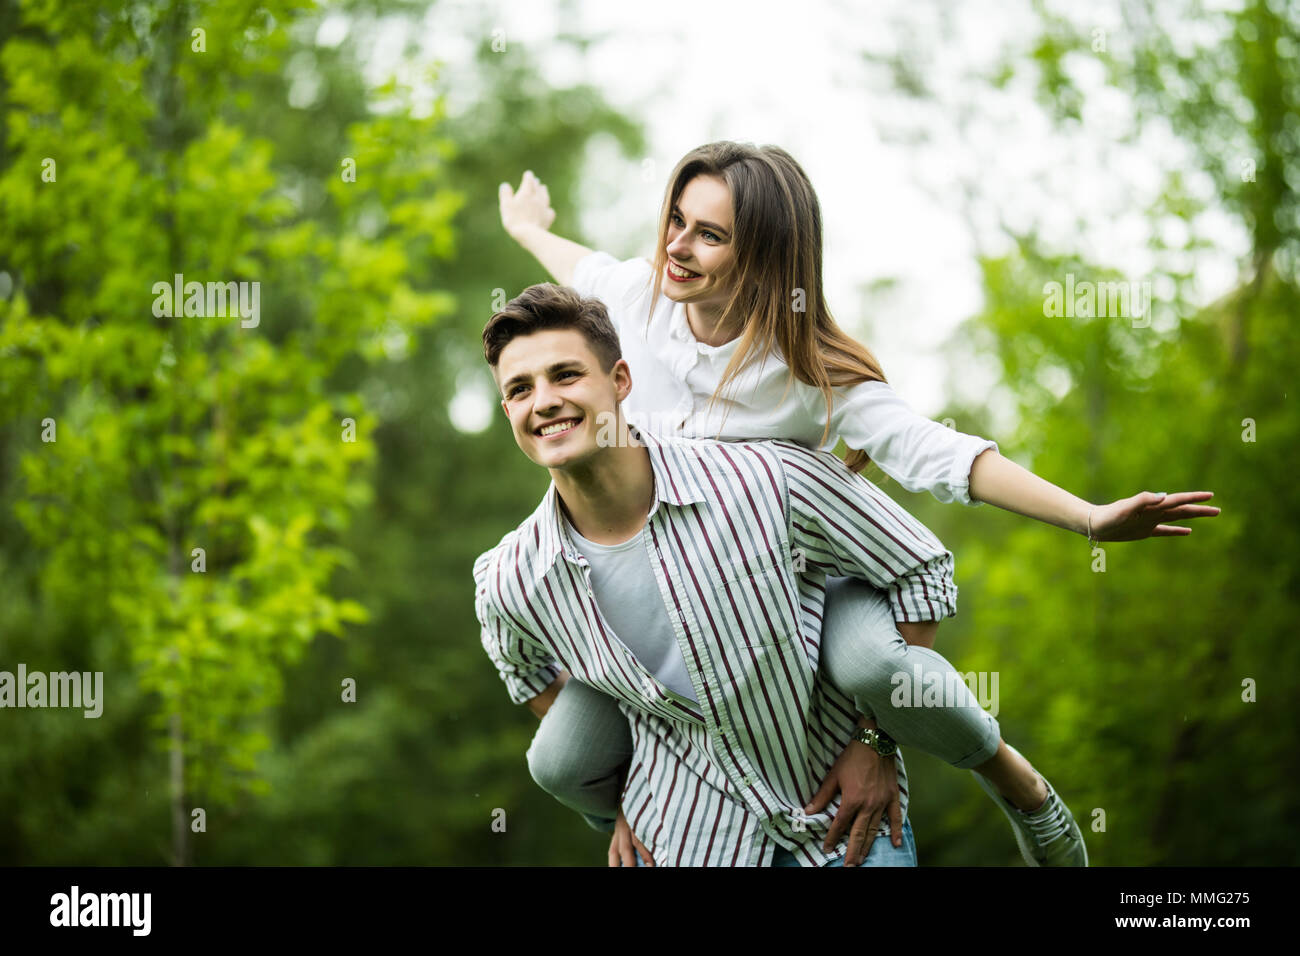 Cute sweet partner piggybacking his lady, she rides him, they are well dressed, excited, lovely, with spread hands - Stock Image